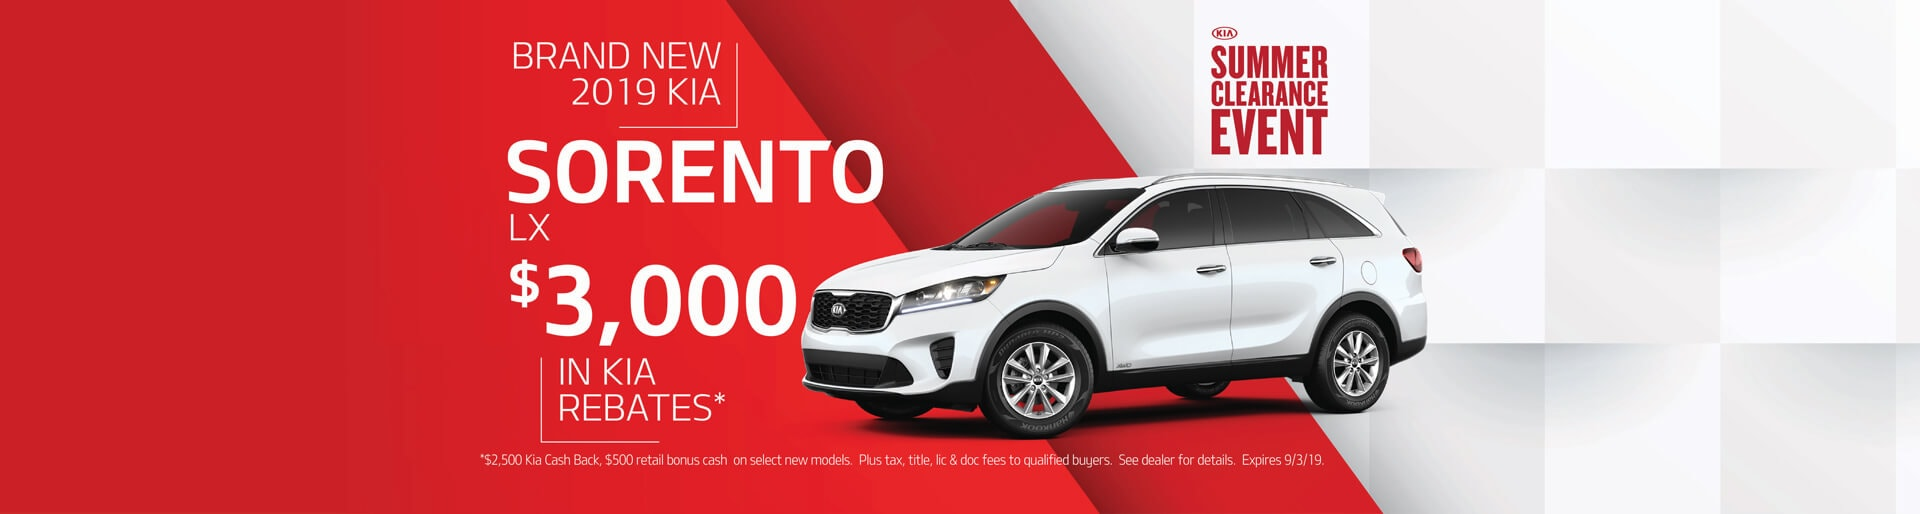 Get $3000 in Kia rebates when buying a 2019 Kia Sorento LX